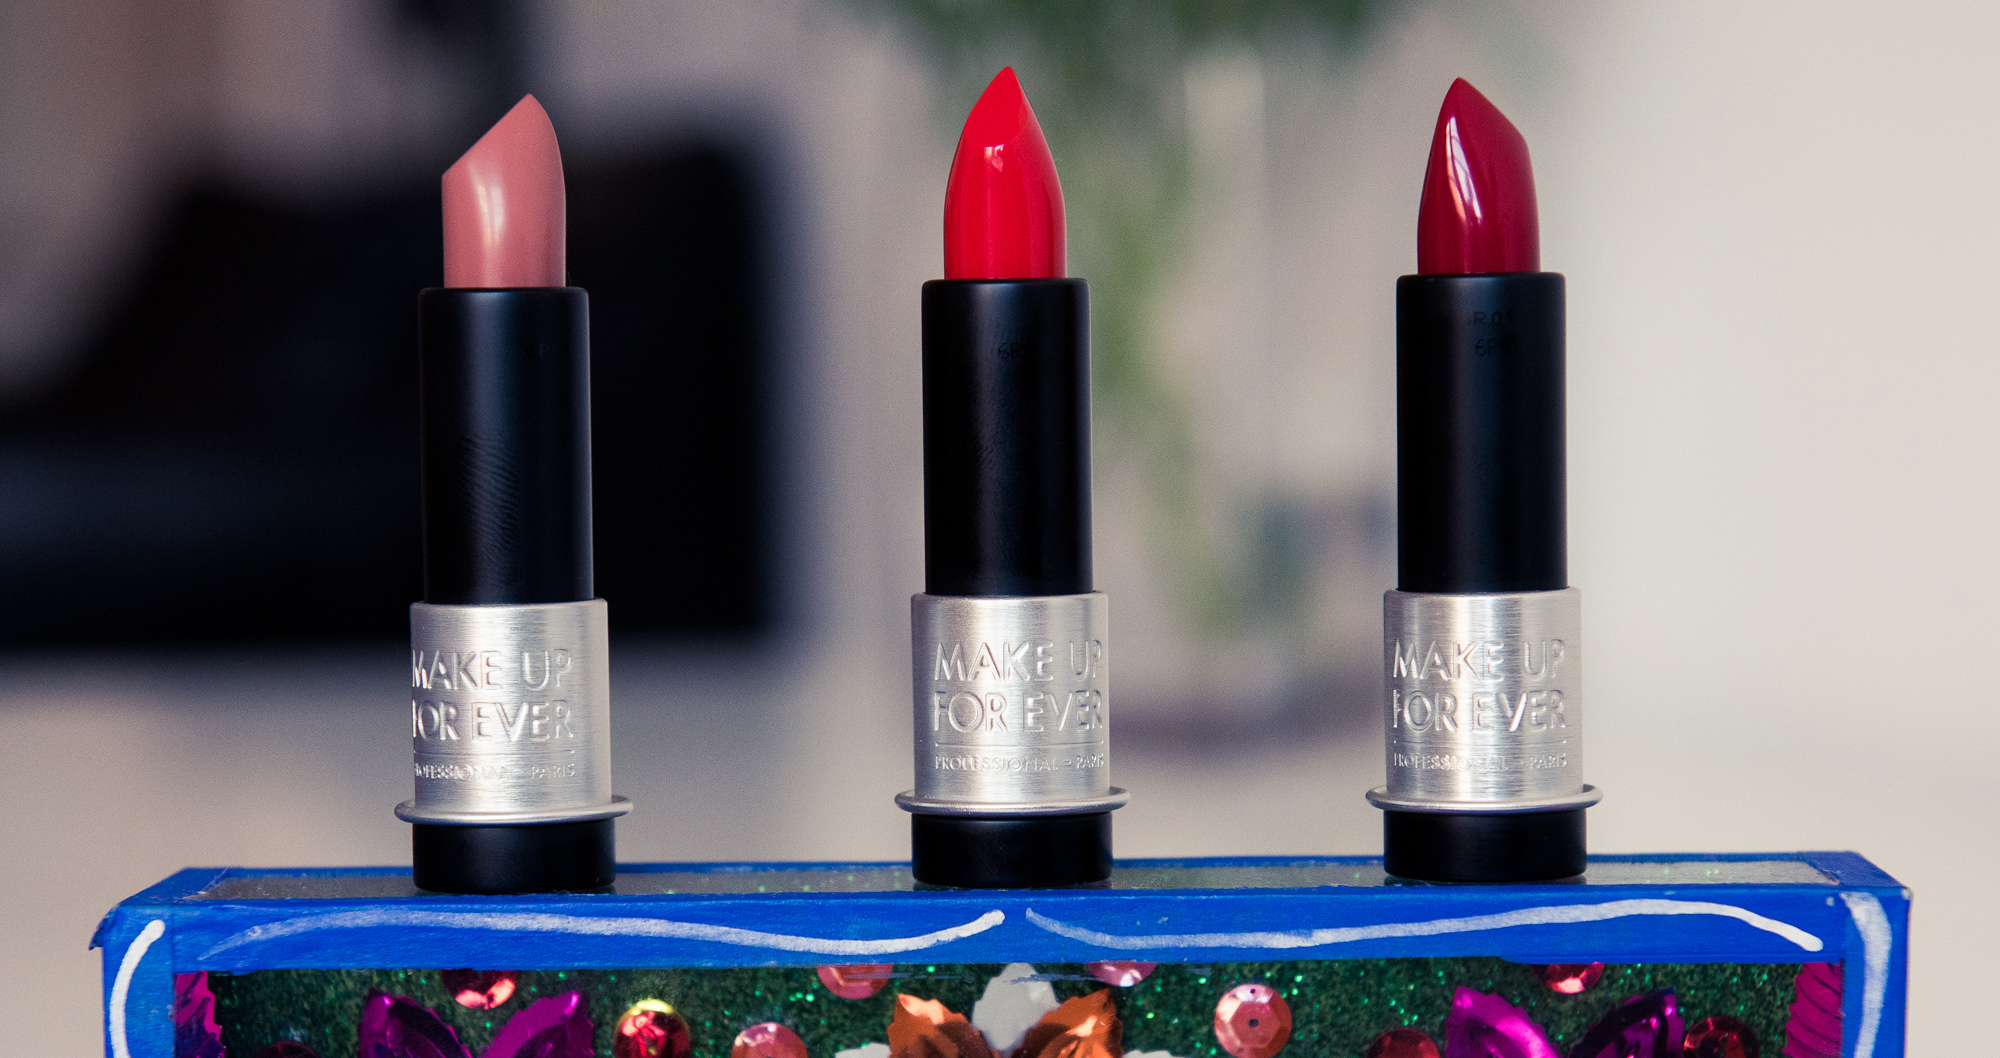 The Lipstick Shade You Need in Your Life, According to Your Zodiac Sign